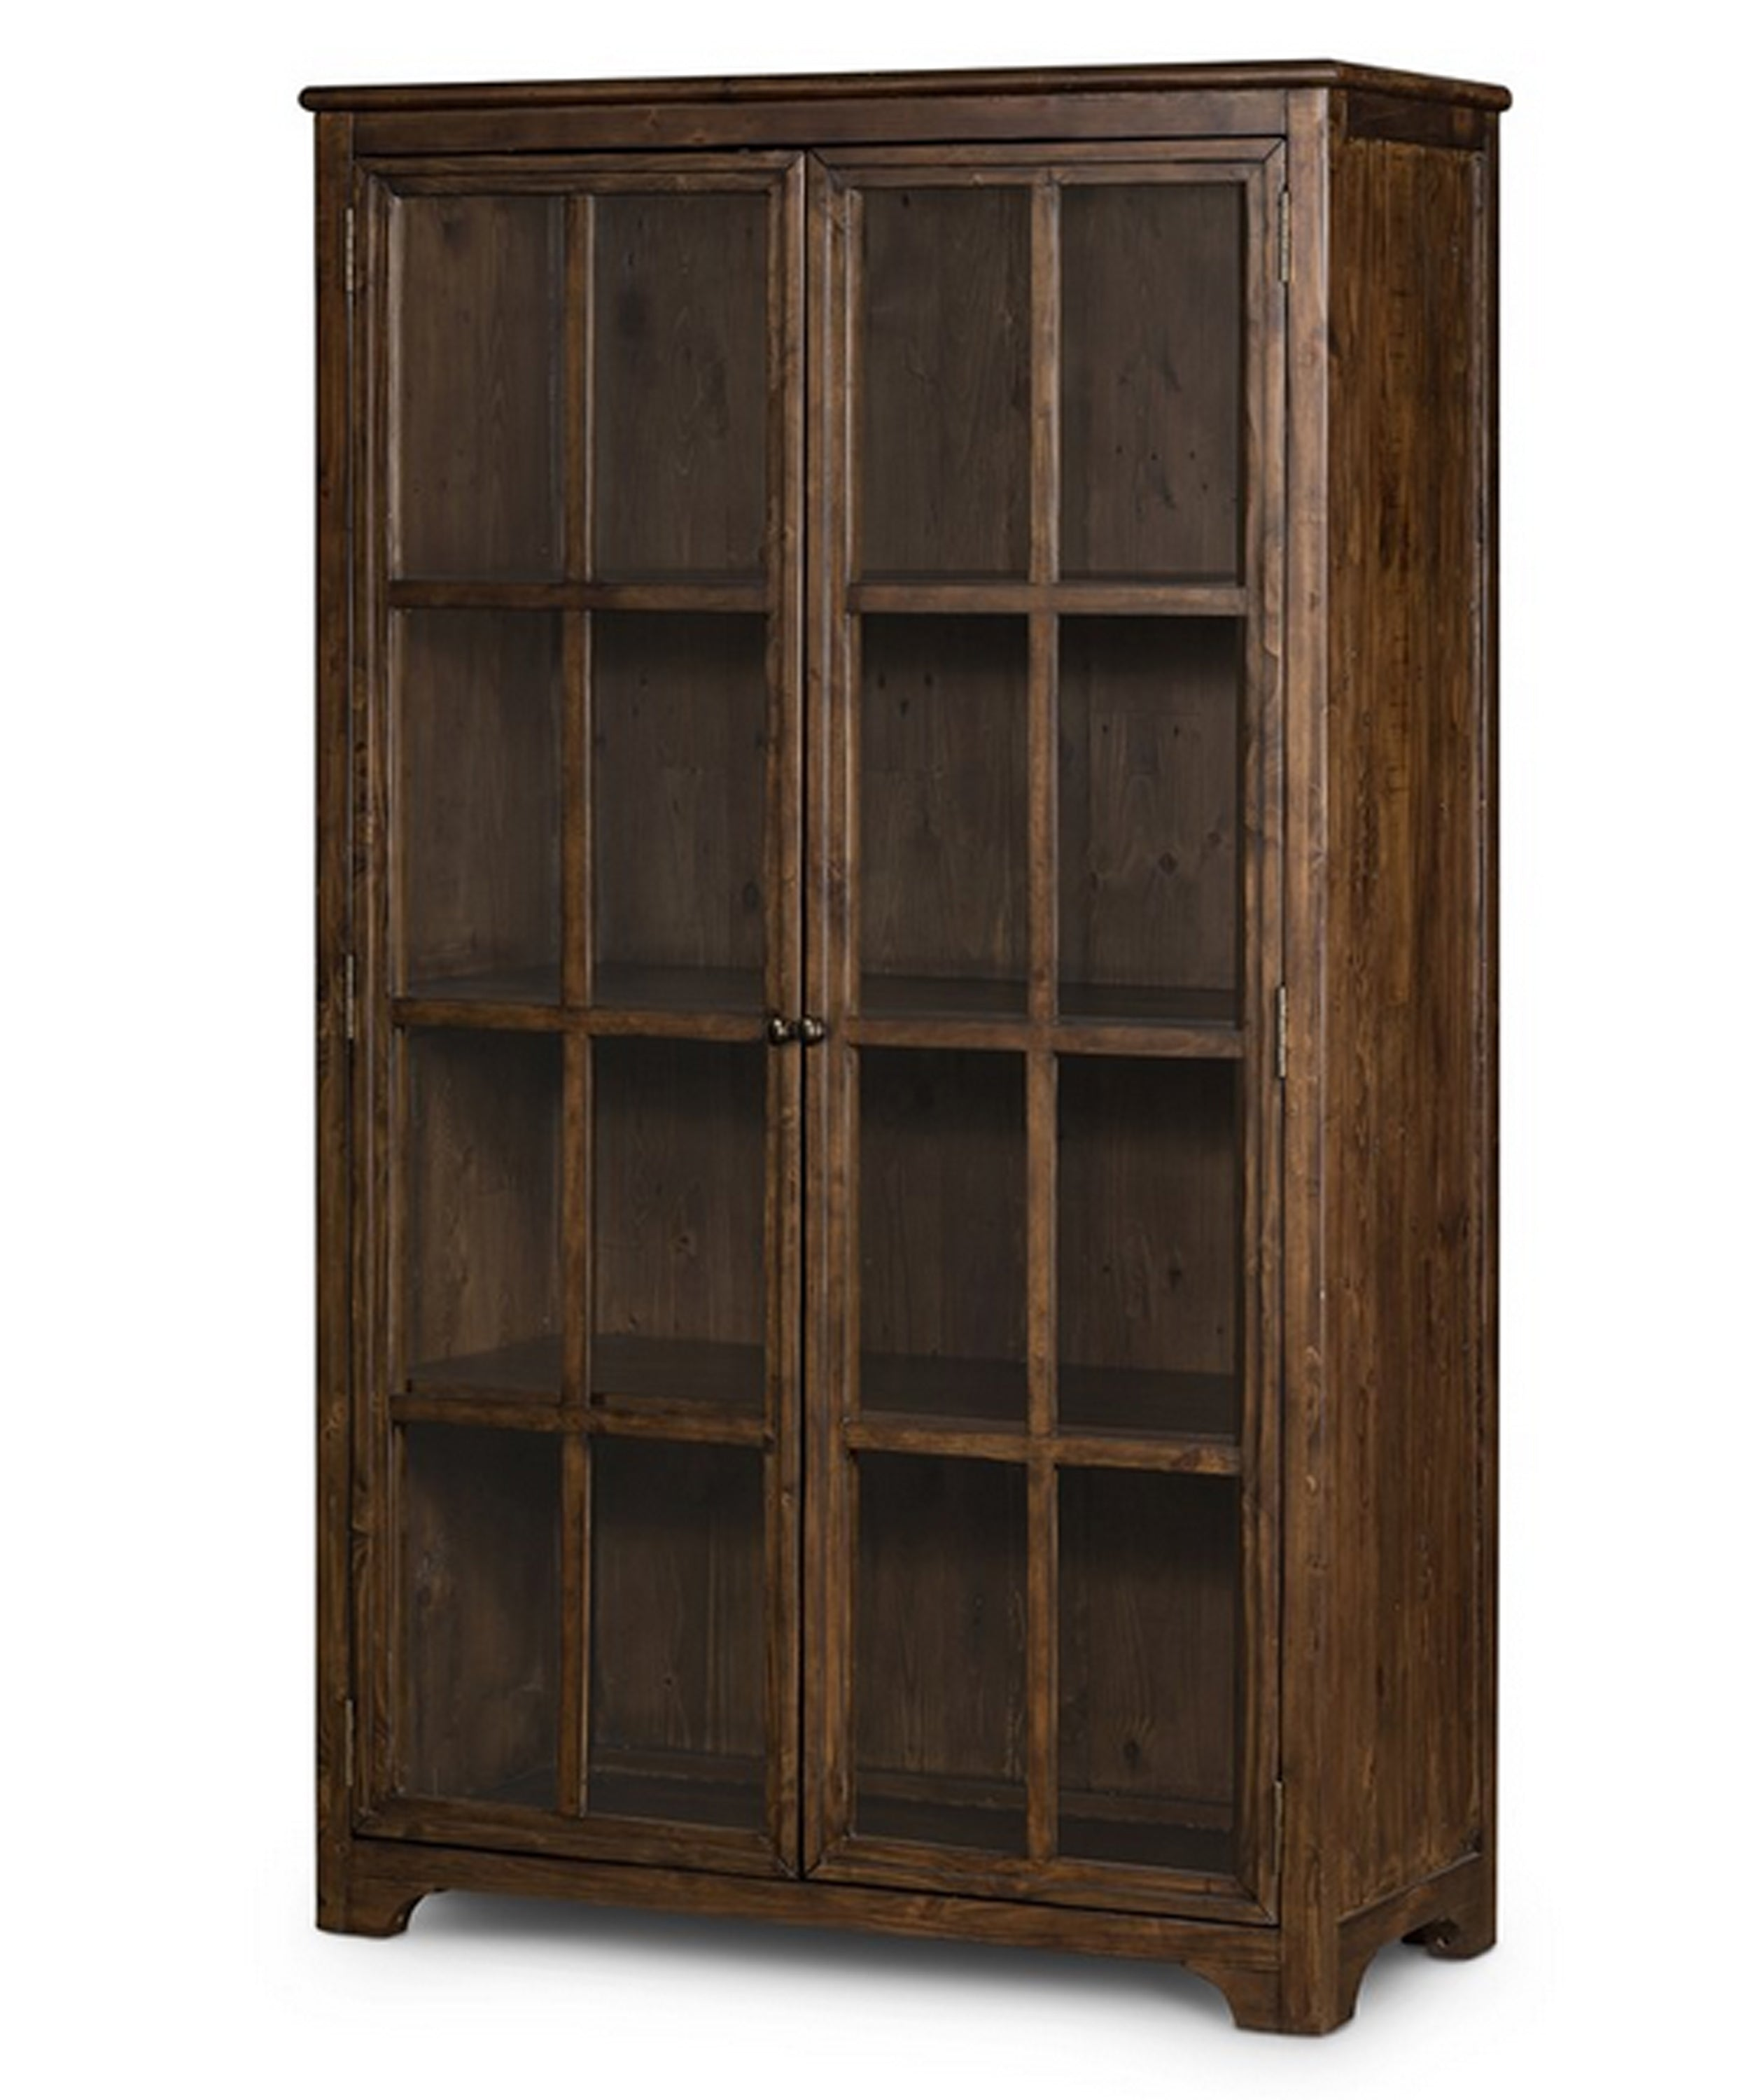 Cove Cabinet, Reclaimed Pine